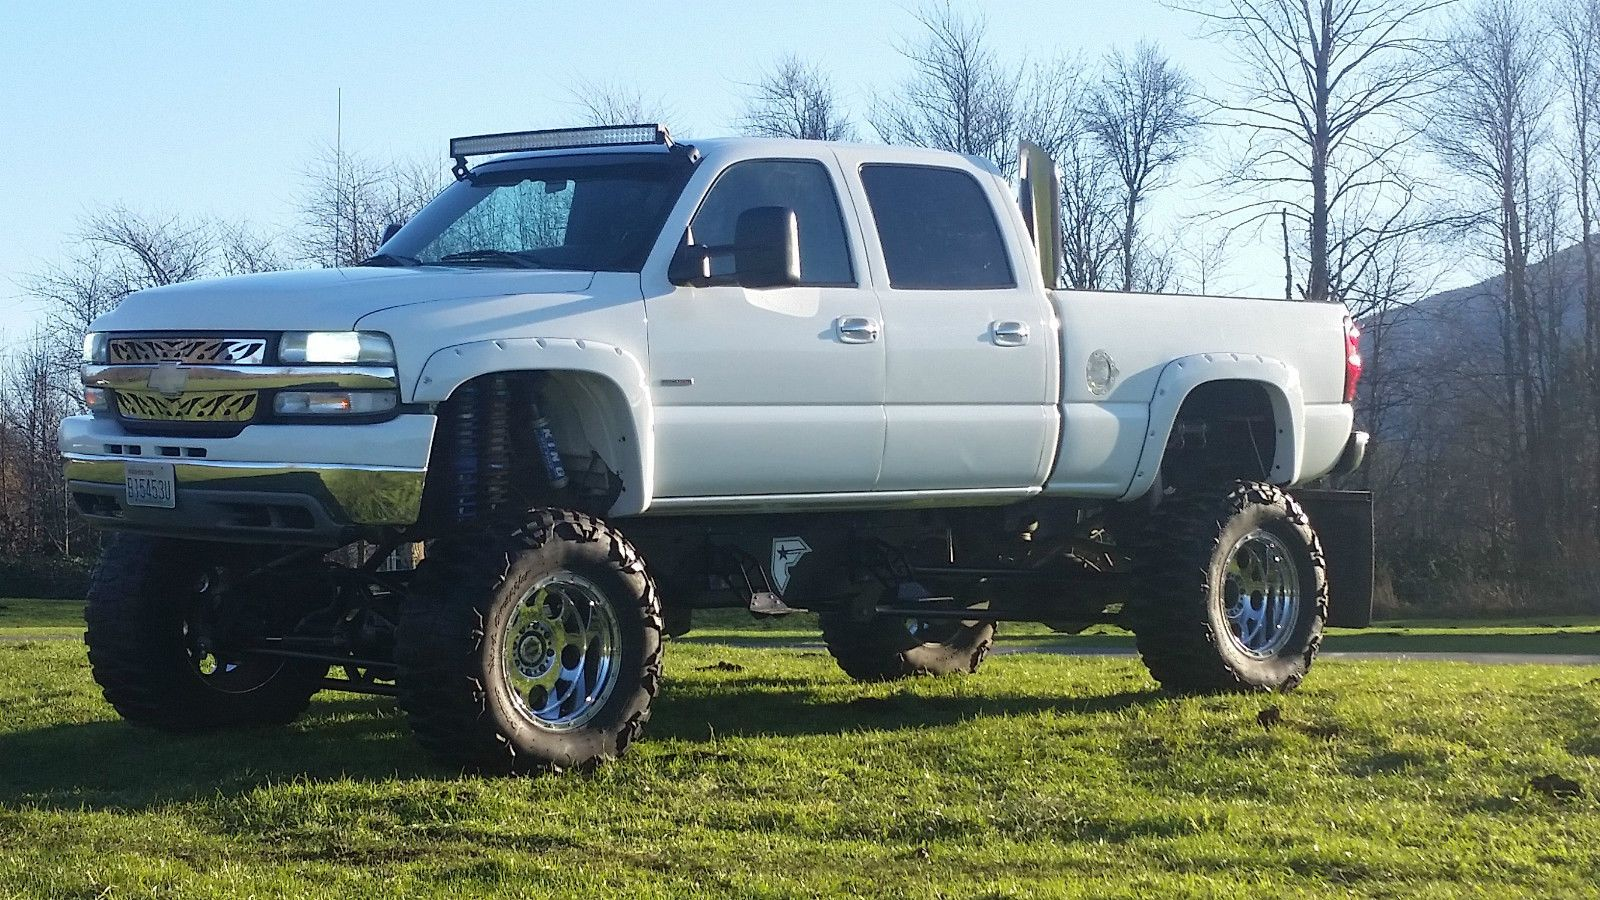 Truck chevy 2500hd trucks : 2002 Chevrolet Silverado 2500 Monster Truck Duramax Diesel ...